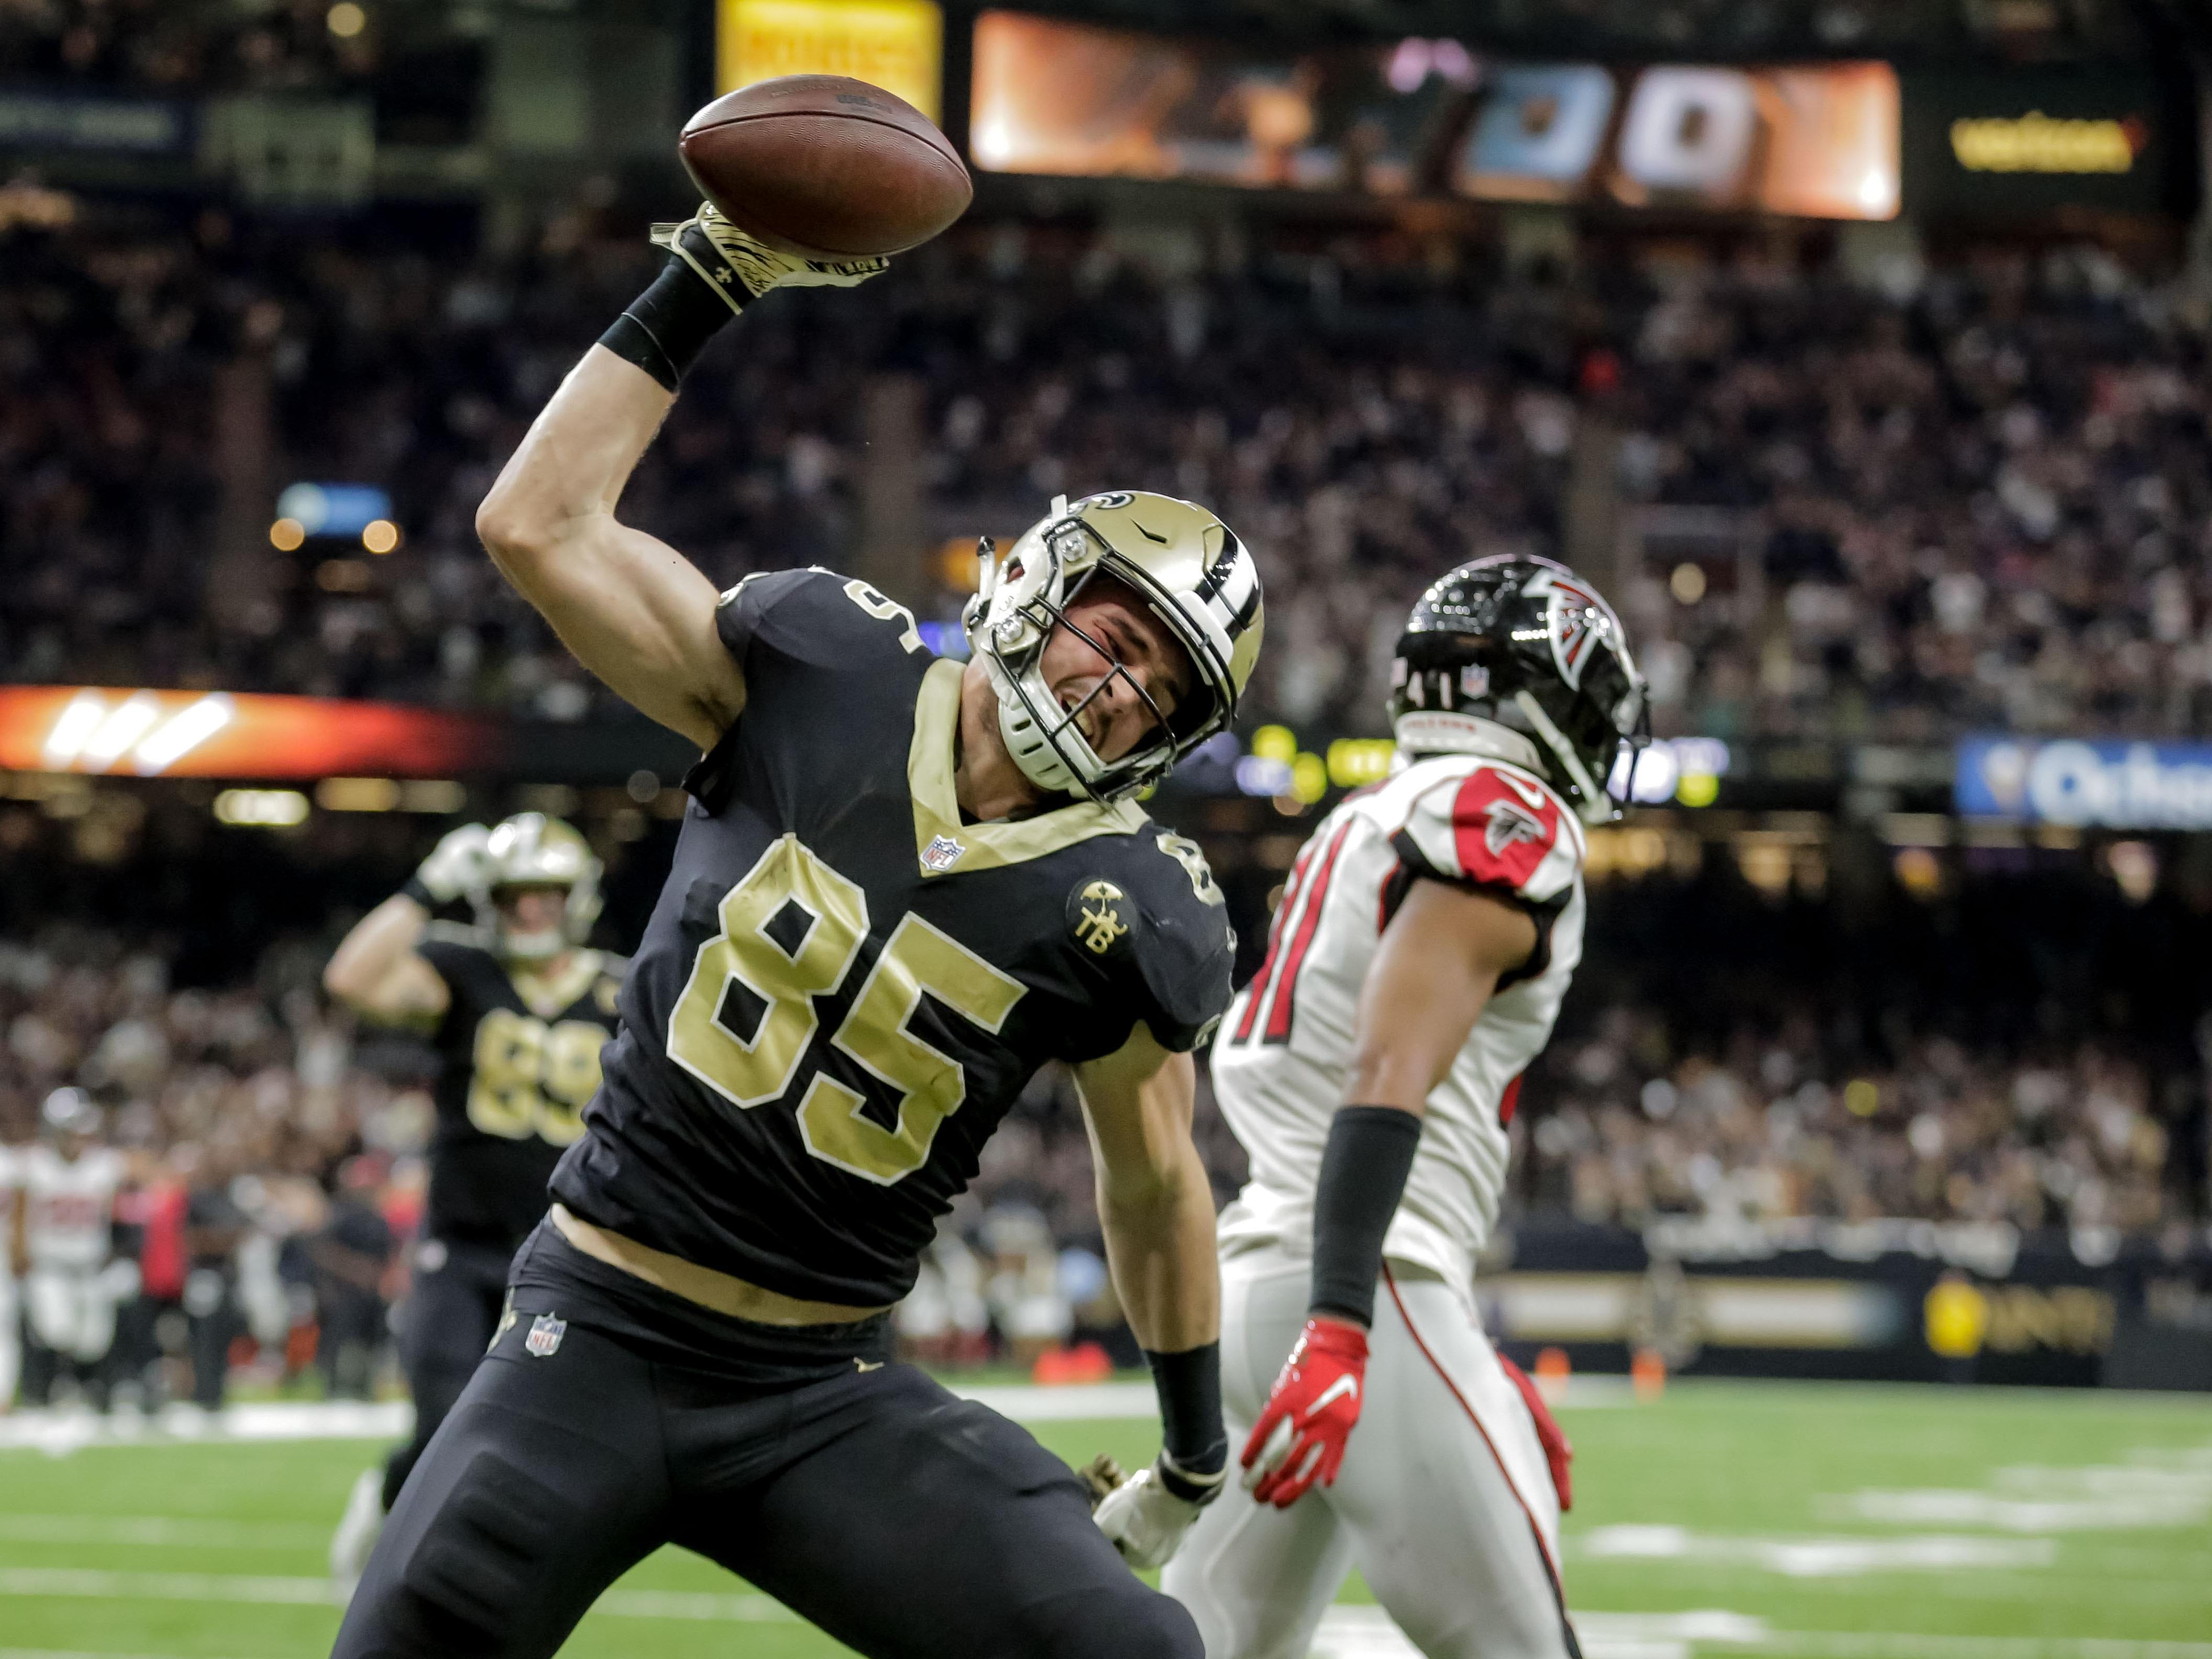 1. Saints (1): Even on a night when stars are coasting, they'll score 31. New Orleans hasn't even bothered to incorporate Brandon Marshall on game day yet.